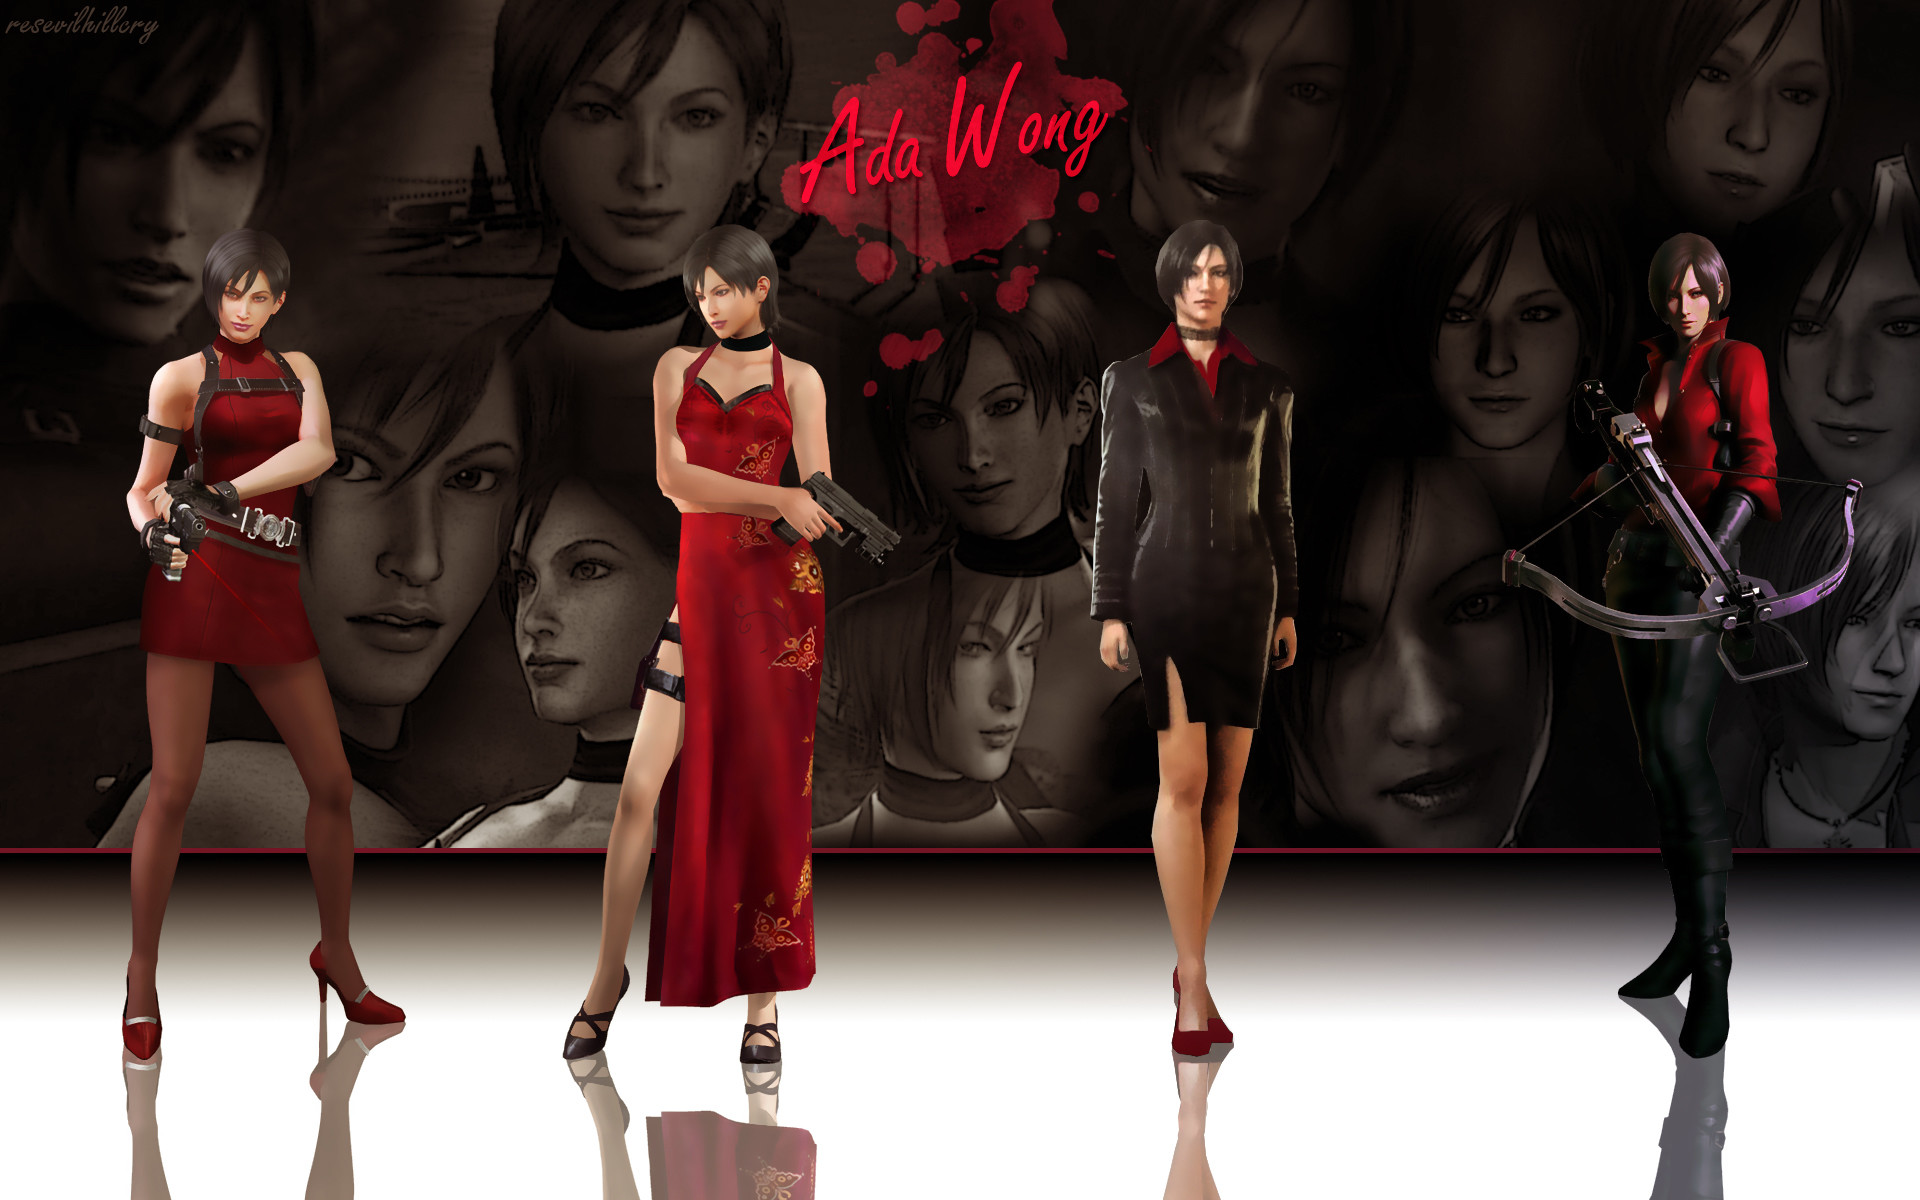 1920x1200 Ada Wong Wallpaper 2 by Yokoylebirisi Ada Wong Wallpaper 2 by Yokoylebirisi